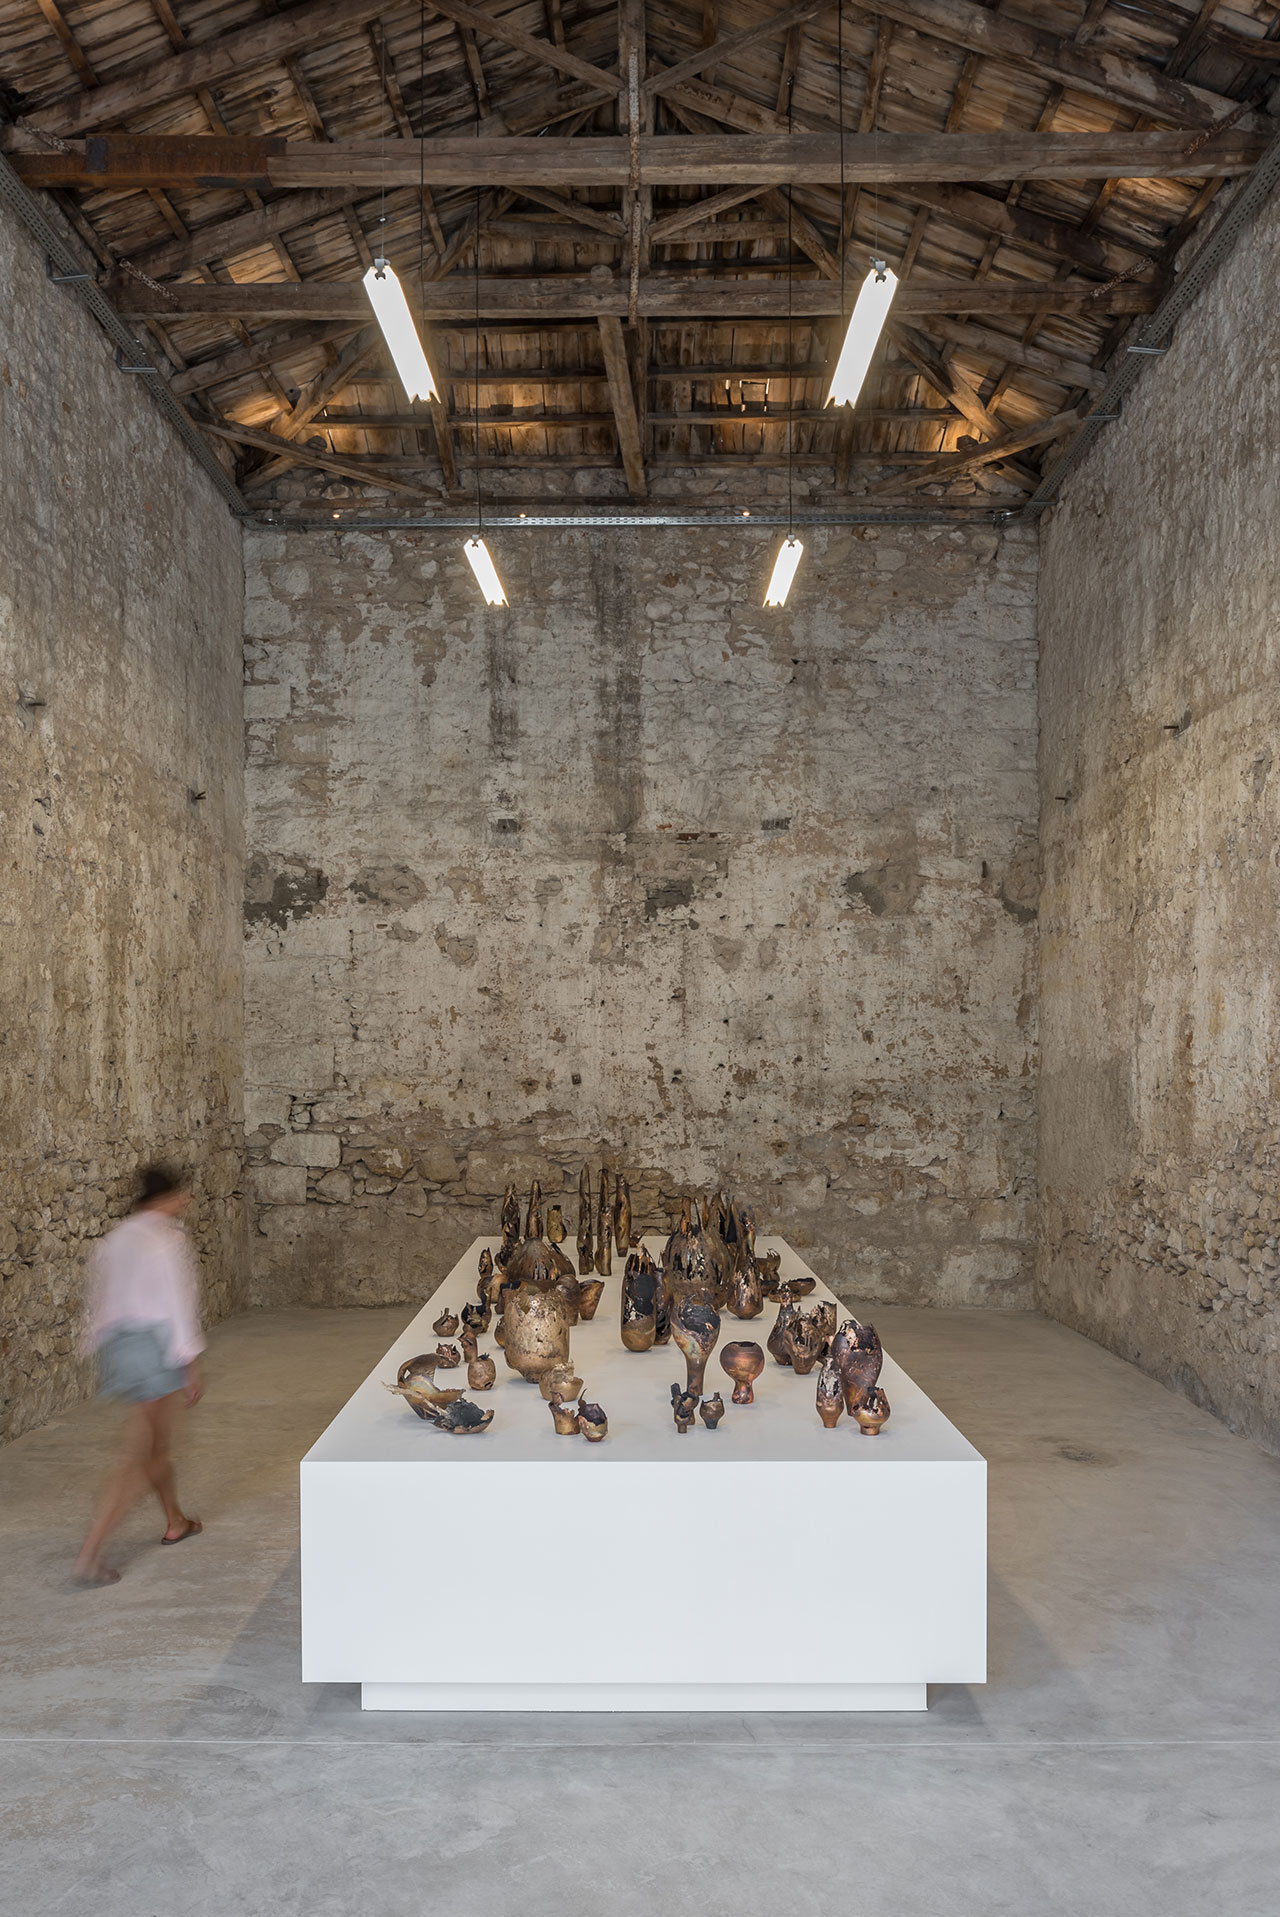 Exhibition view. Omer Arbel - 133 at Carwan gallery, Athens. Photo by Giorgos Sfakianakis.